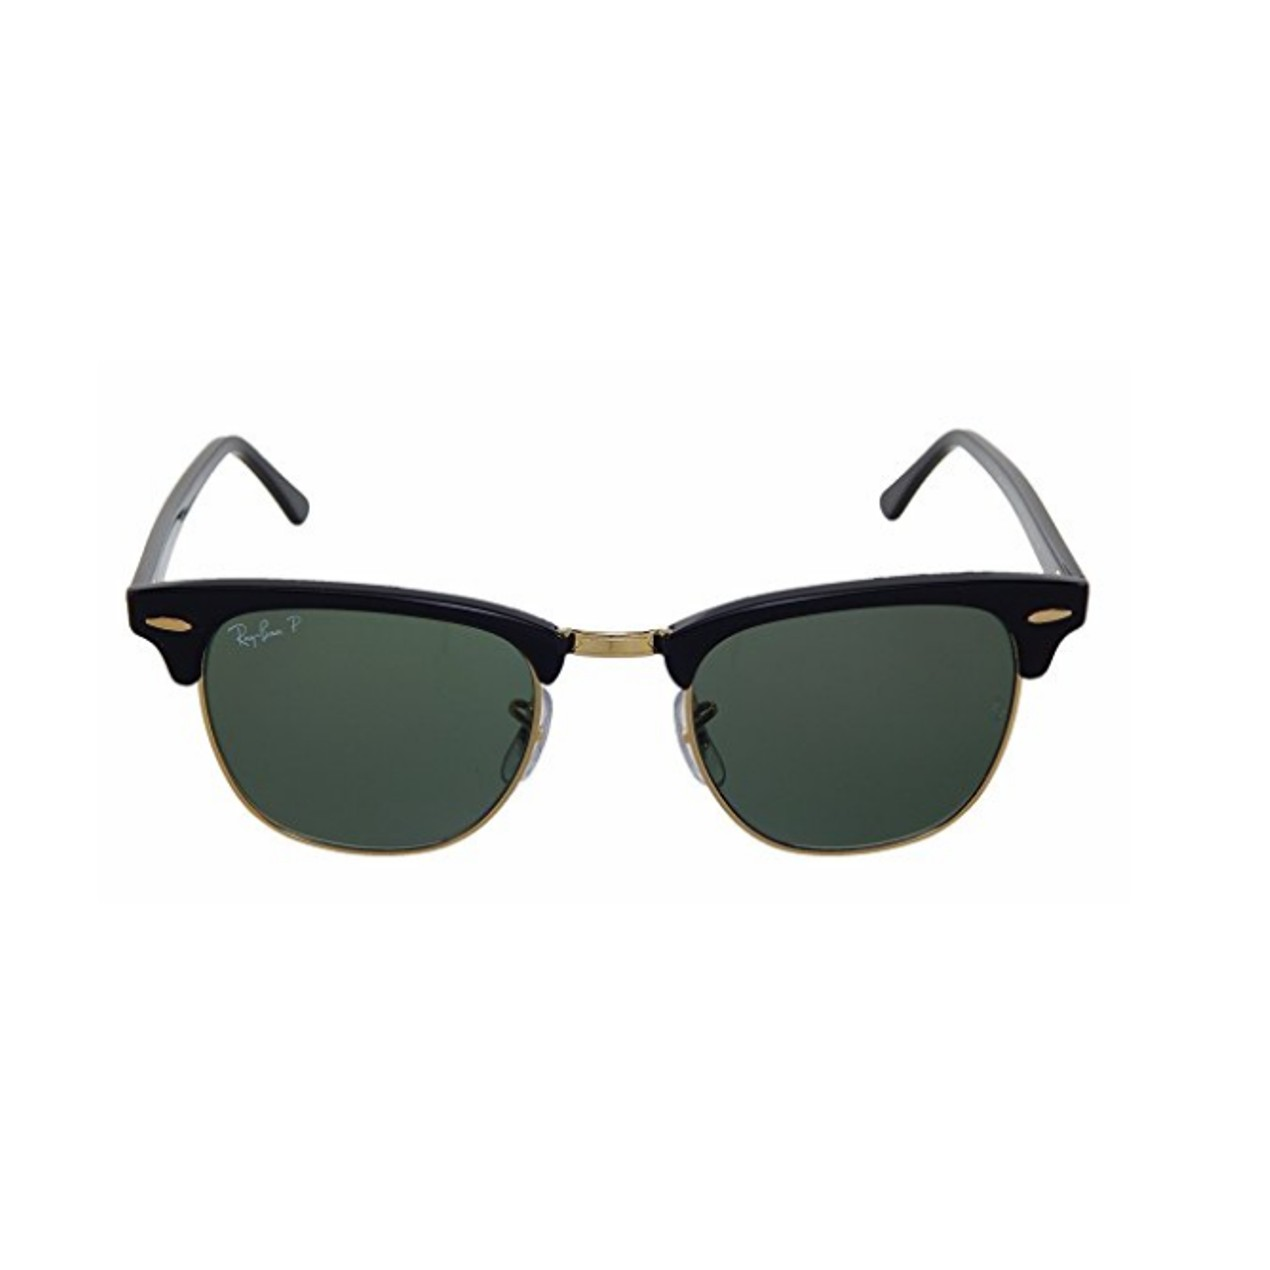 891aad65955 New Ray Ban Clubmaster RB3016 901 58 Black Crystal Green Polarized ...